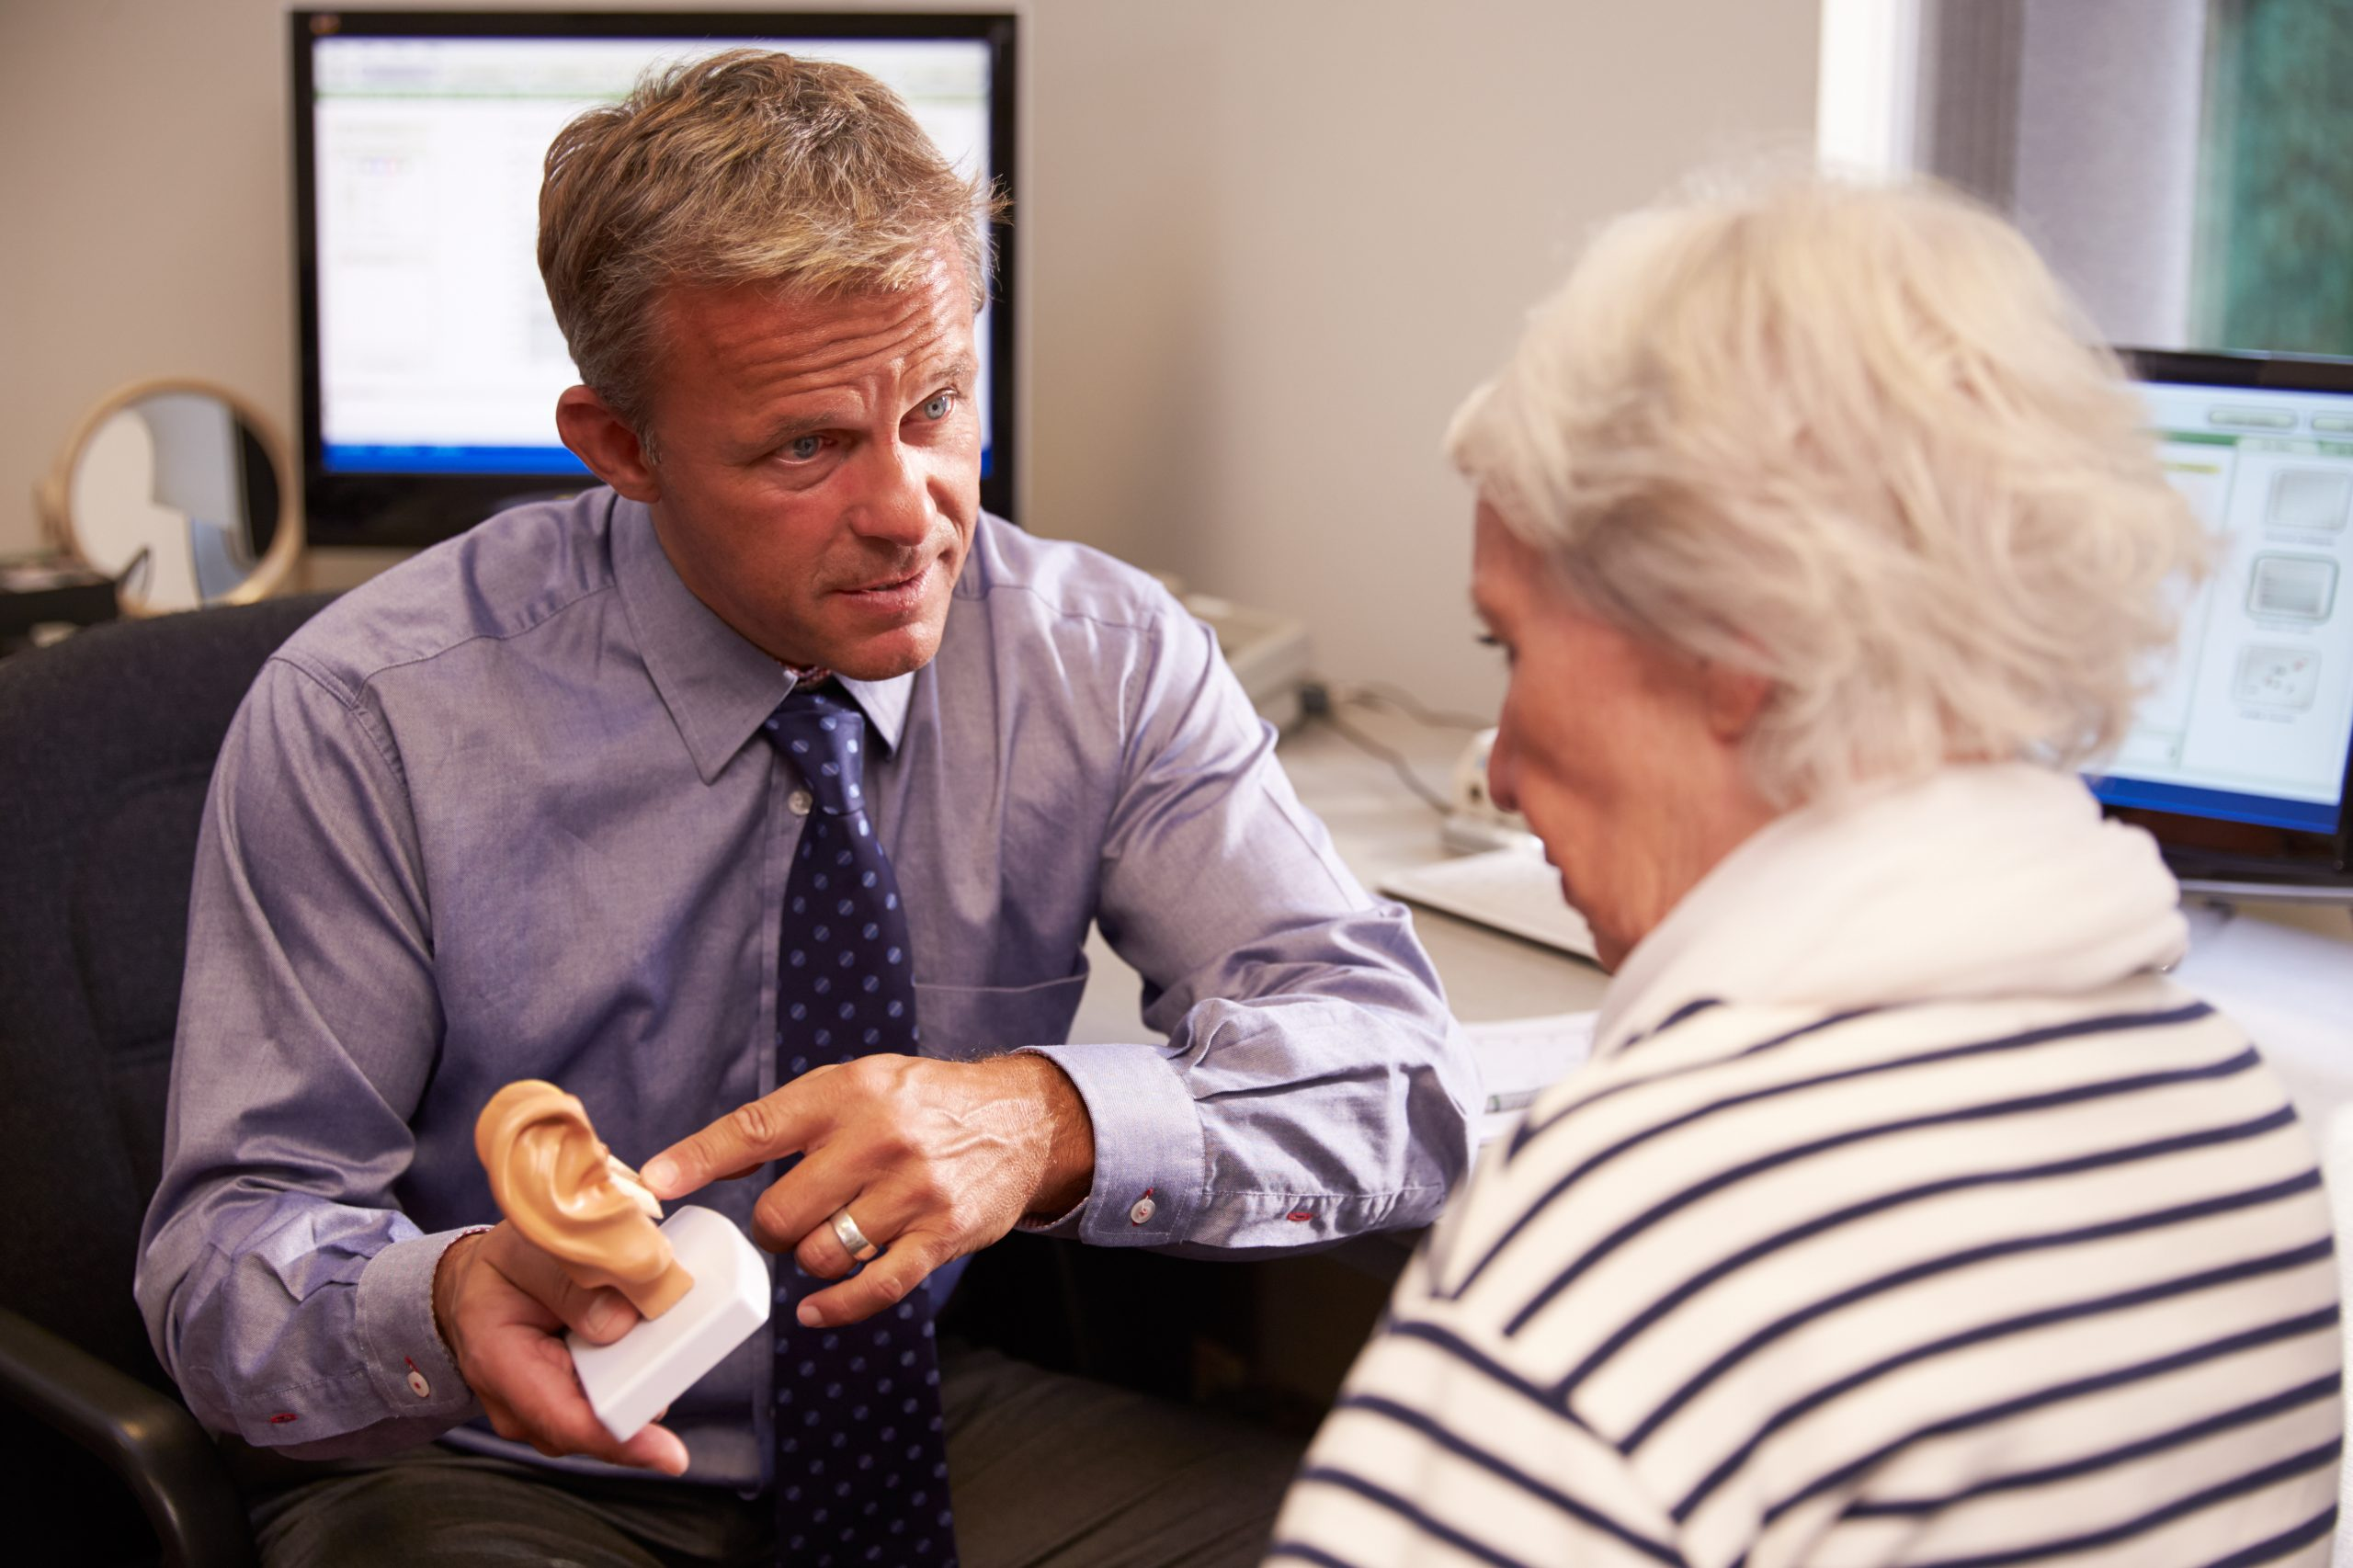 Hearing Doctor Showing Senior Female Patient Model Of Human Ear